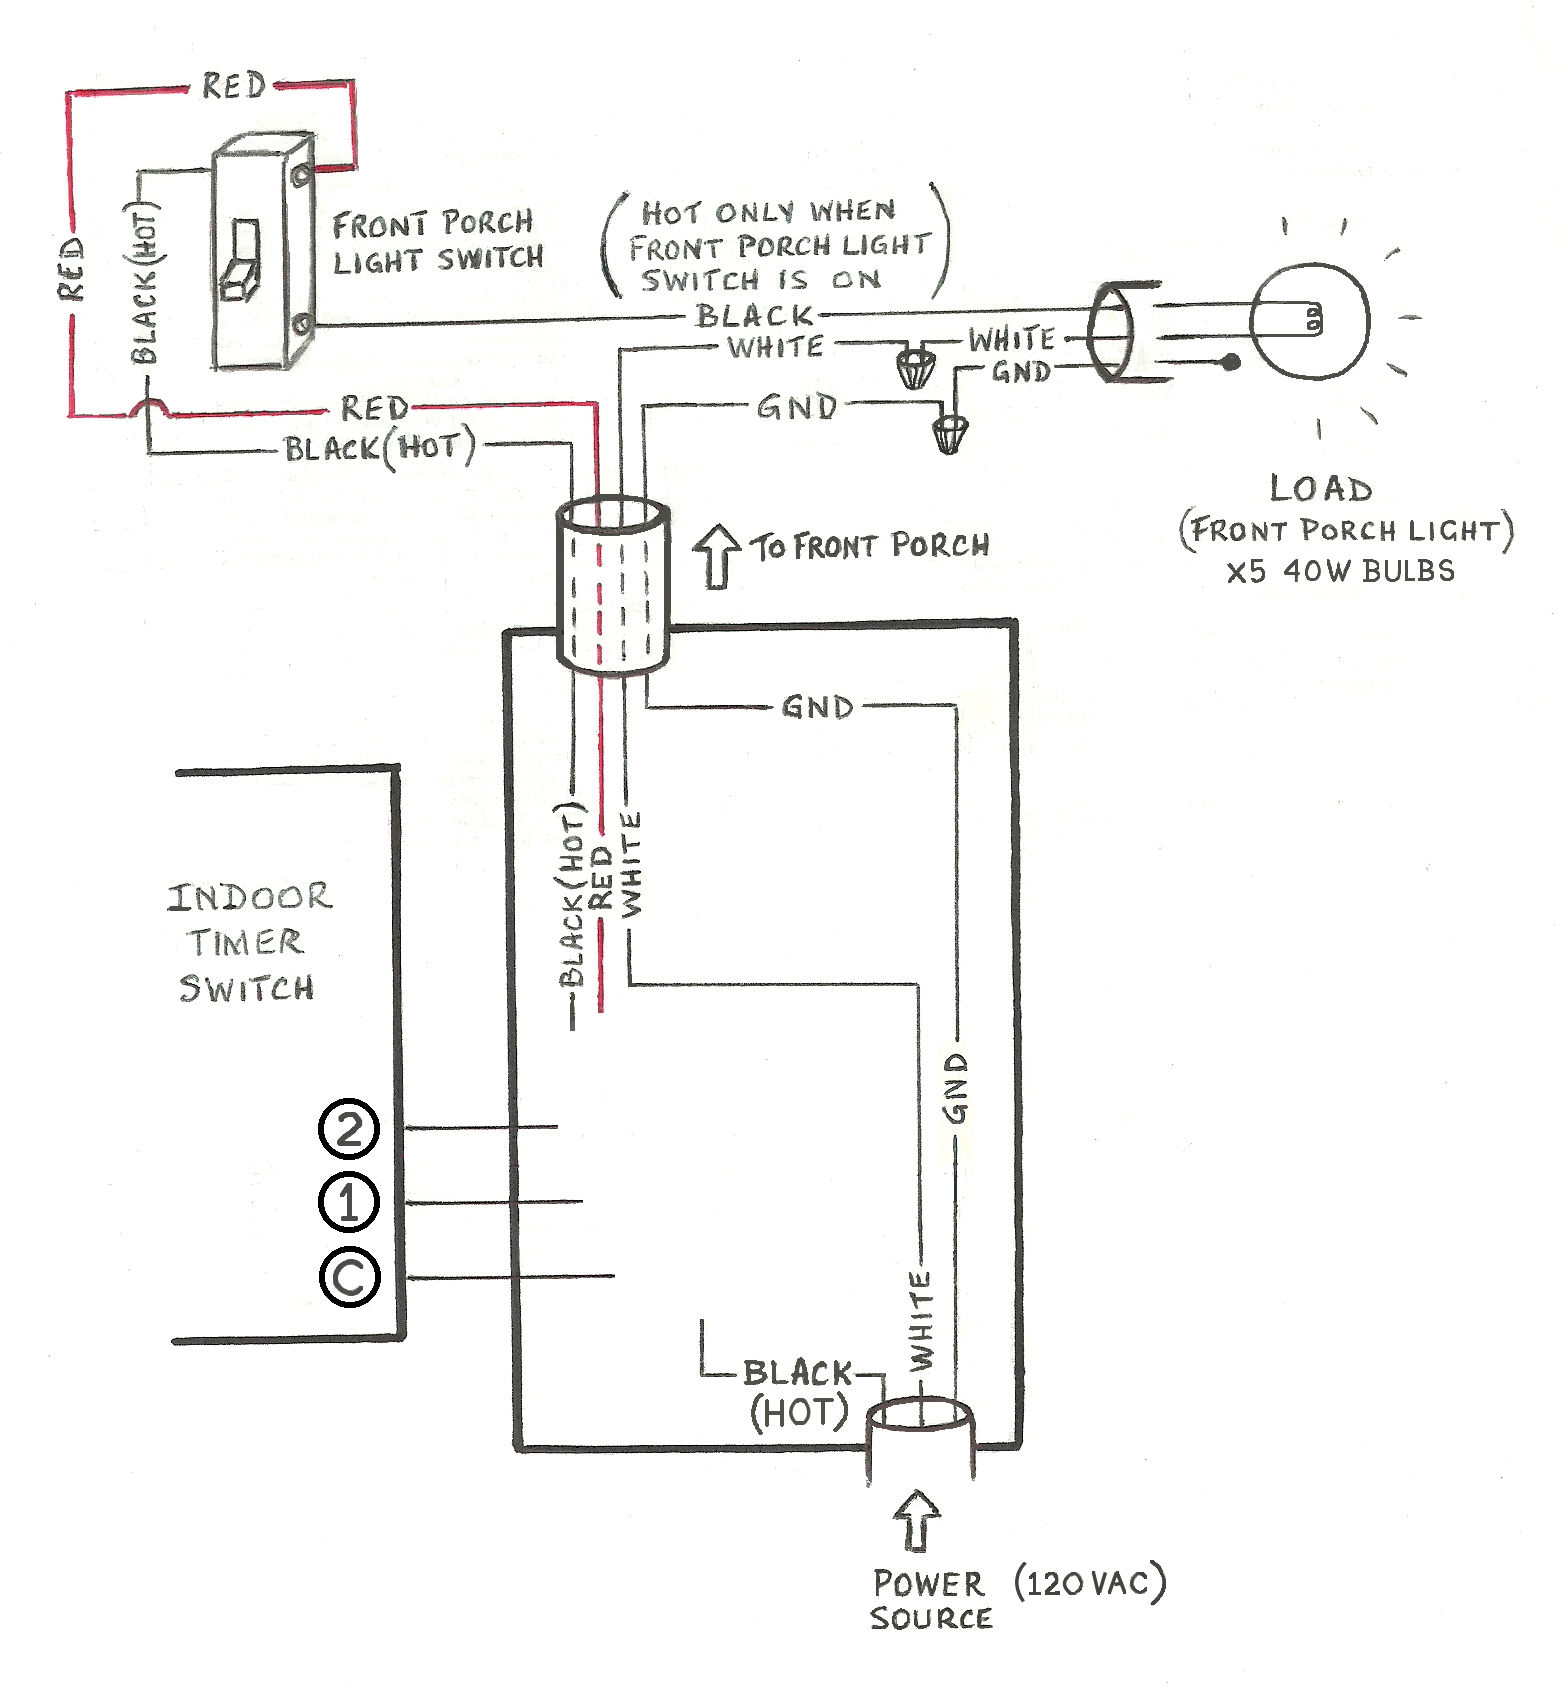 hight resolution of parallel electrical wiring multiple outlets free download wiring electrical switch dimensions electrical switch wiring diagram free download